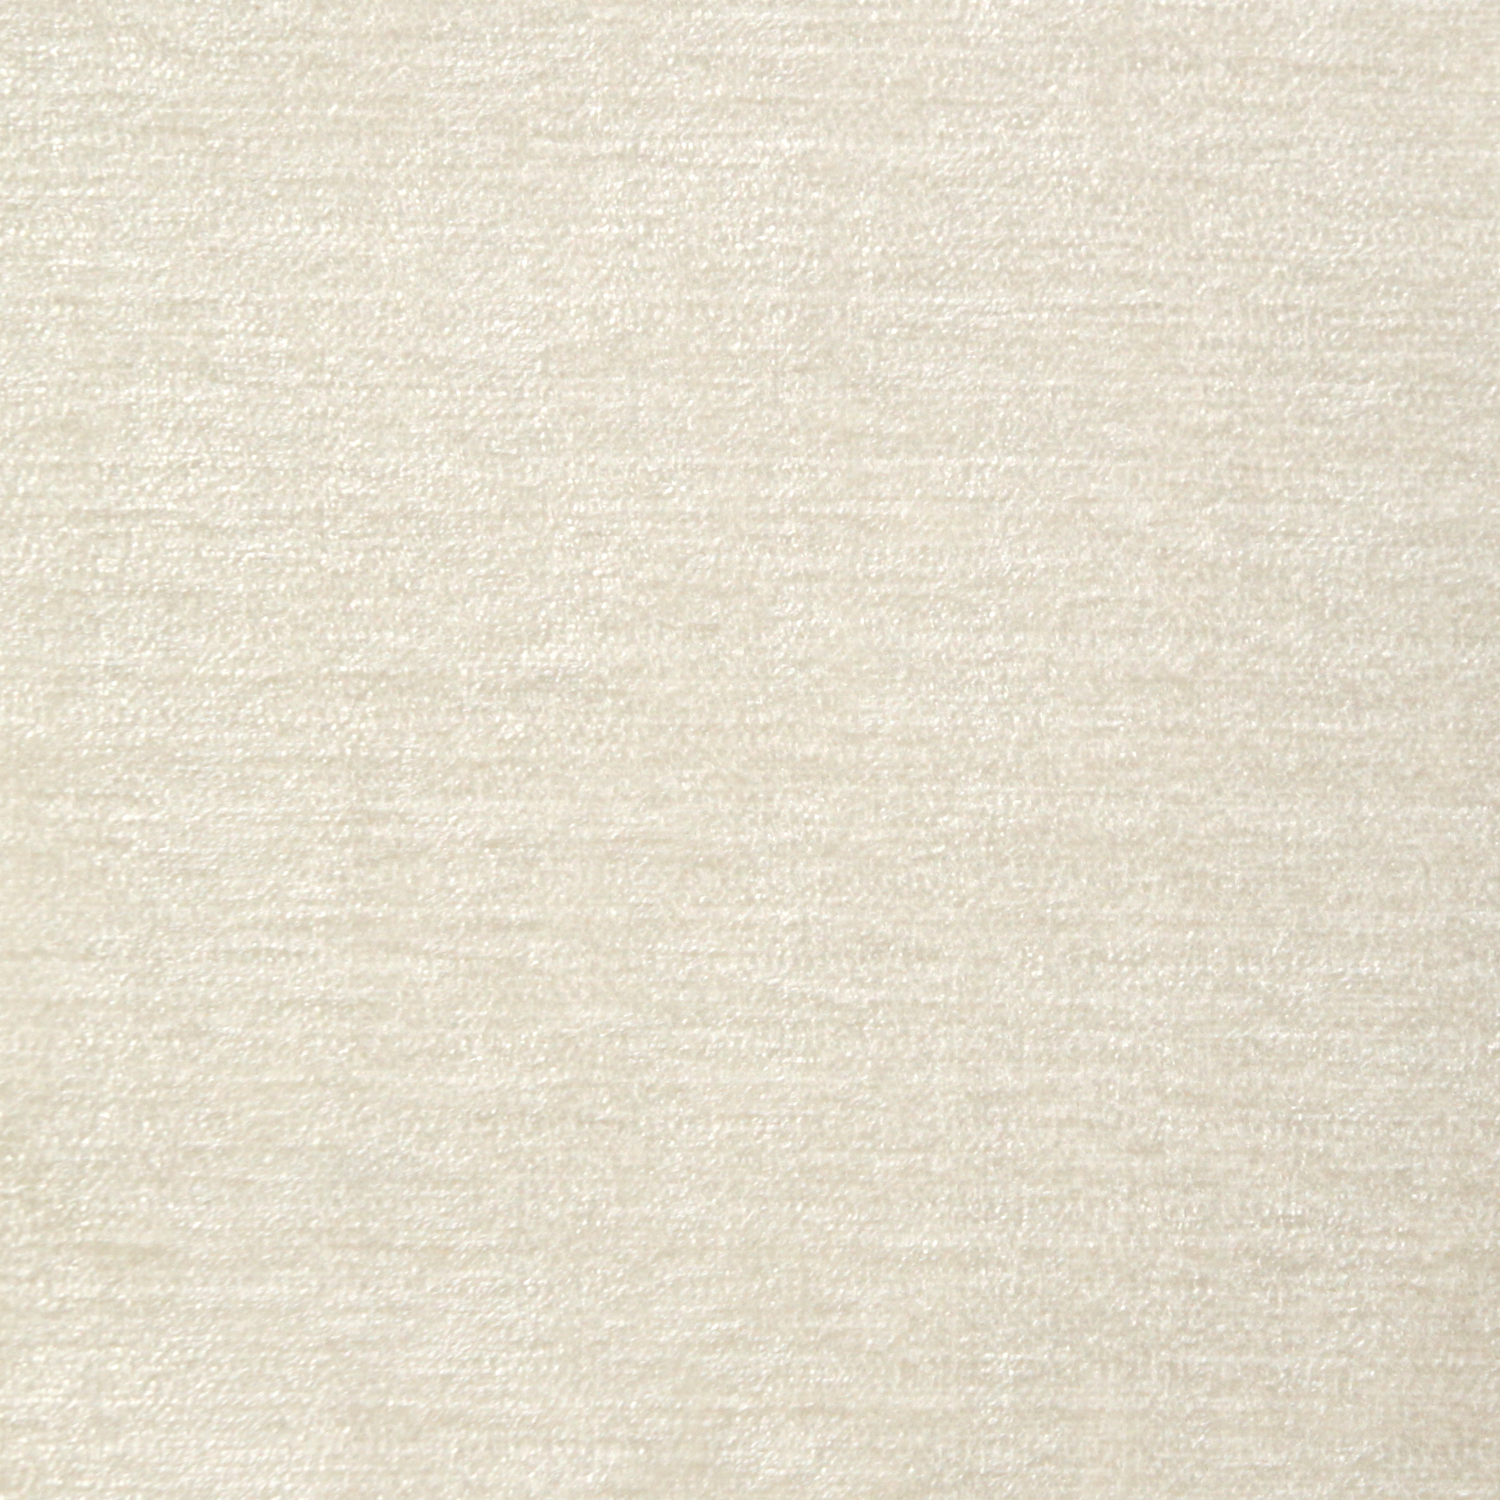 white linen paper no watermark Cotton linen paper, 100% cotton paper with security thread watermark,us $ 004 - 01 / piece, lianlong, cotton linen pulp paper-66,ll-p5076, custom stickersource.